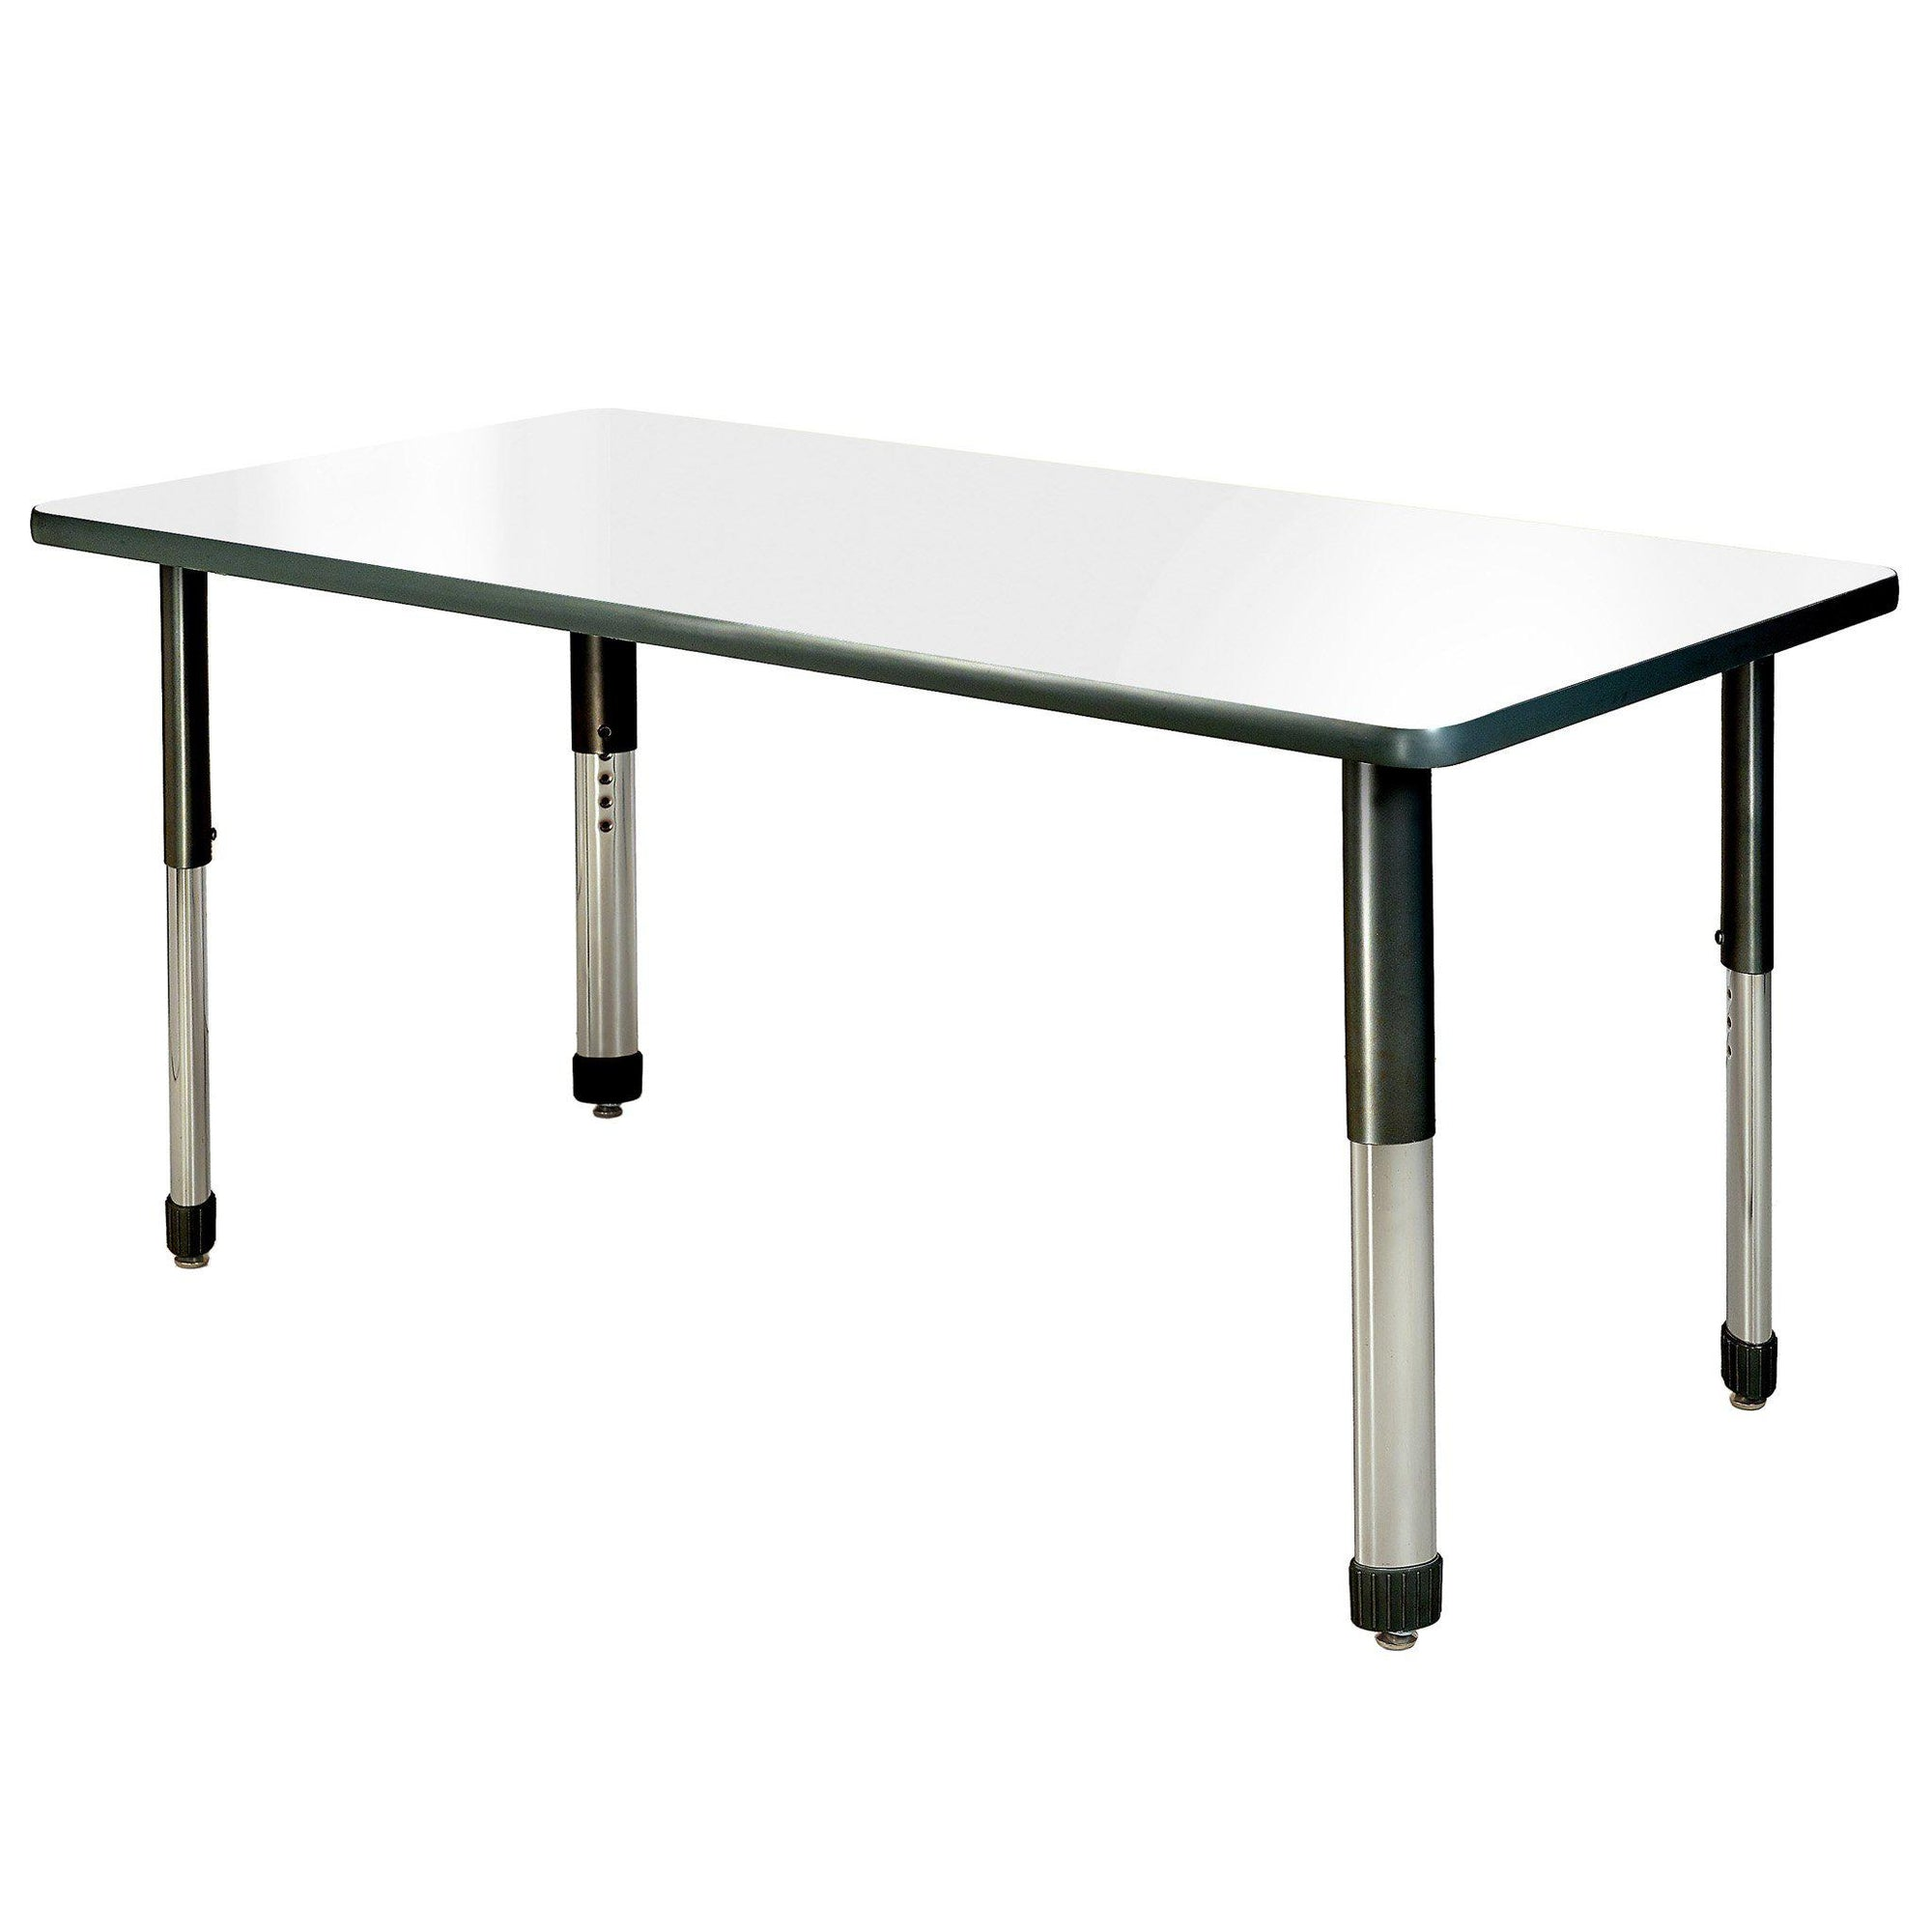 "Aero Dry Erase Activity Table, 24"" x 60"" Rectangle, Oval Adjustable Height Legs"